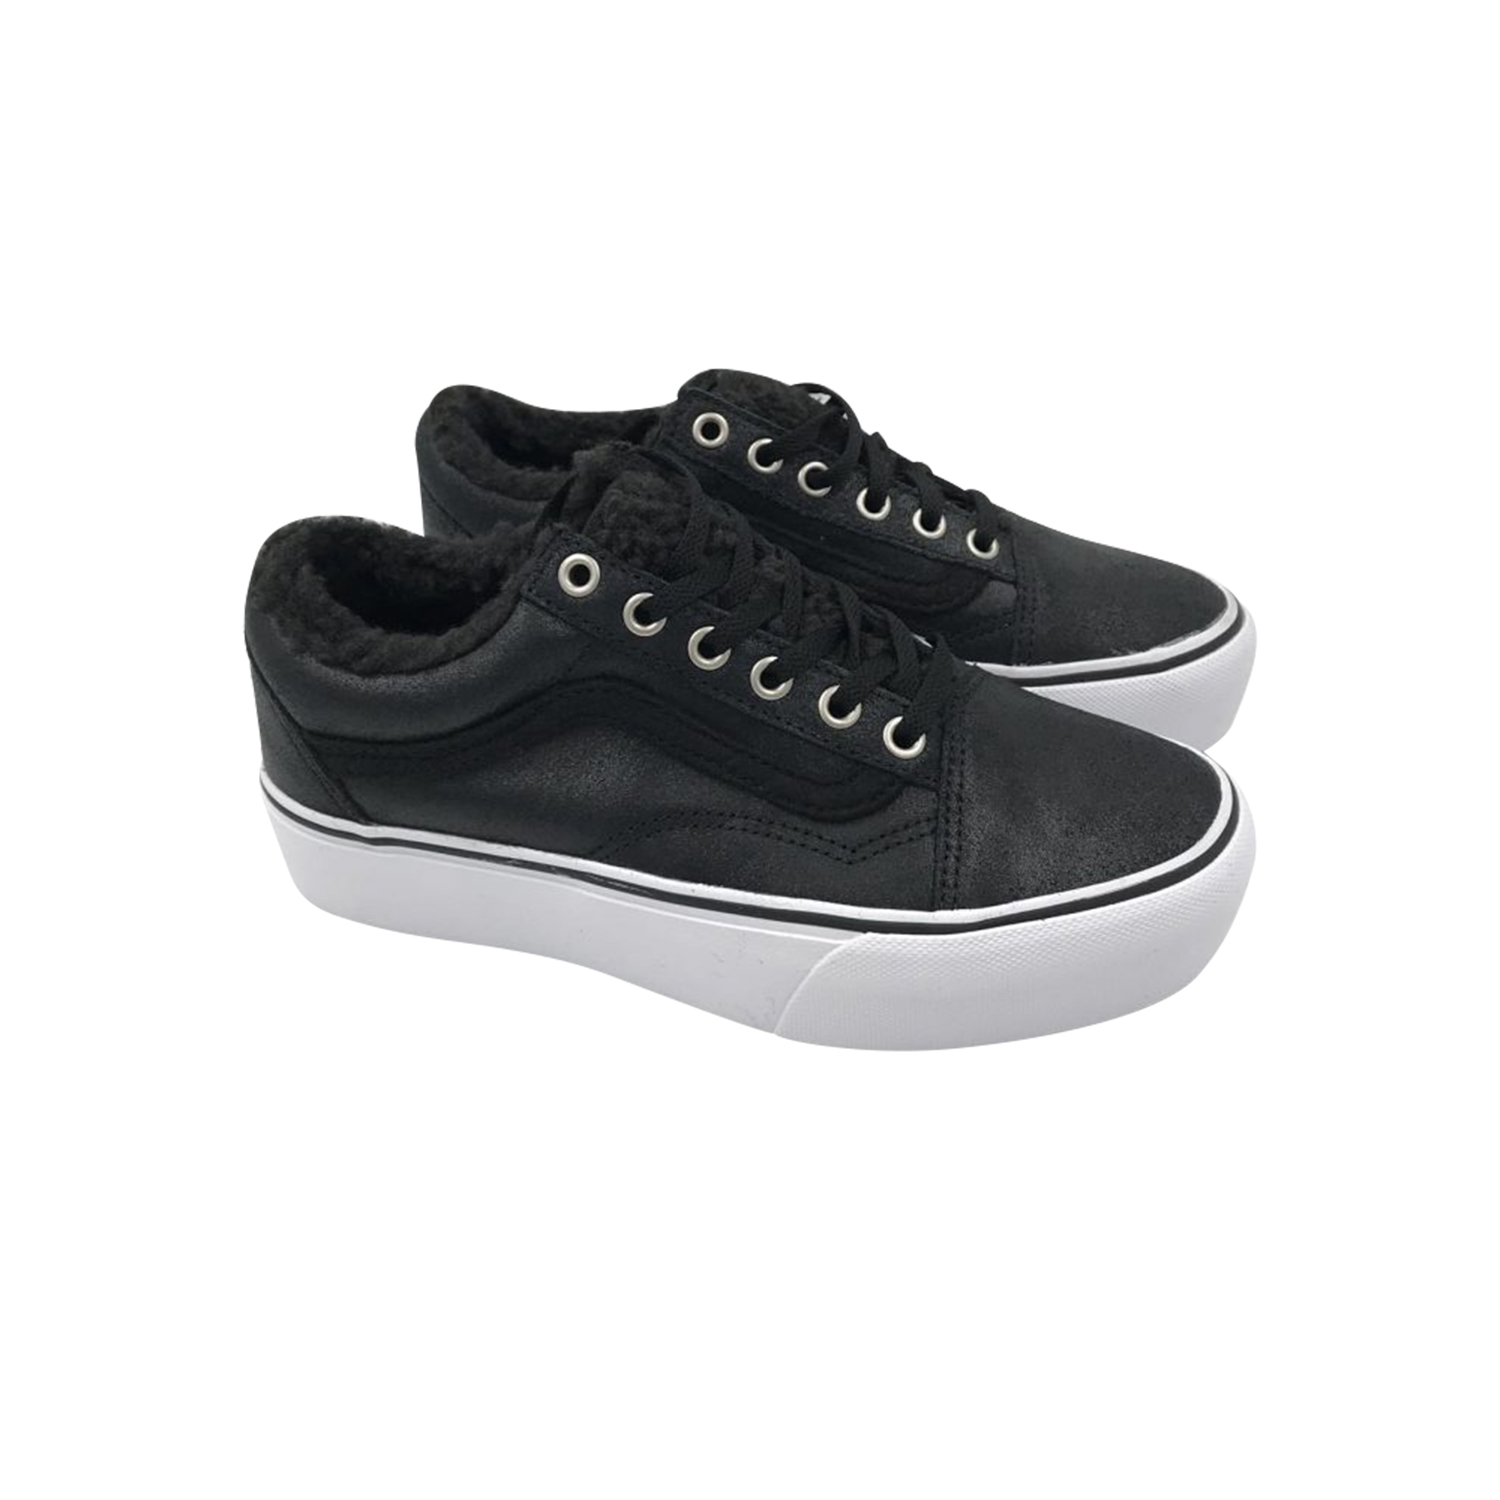 VANS OLD SKOOL PLATFORM BLACK